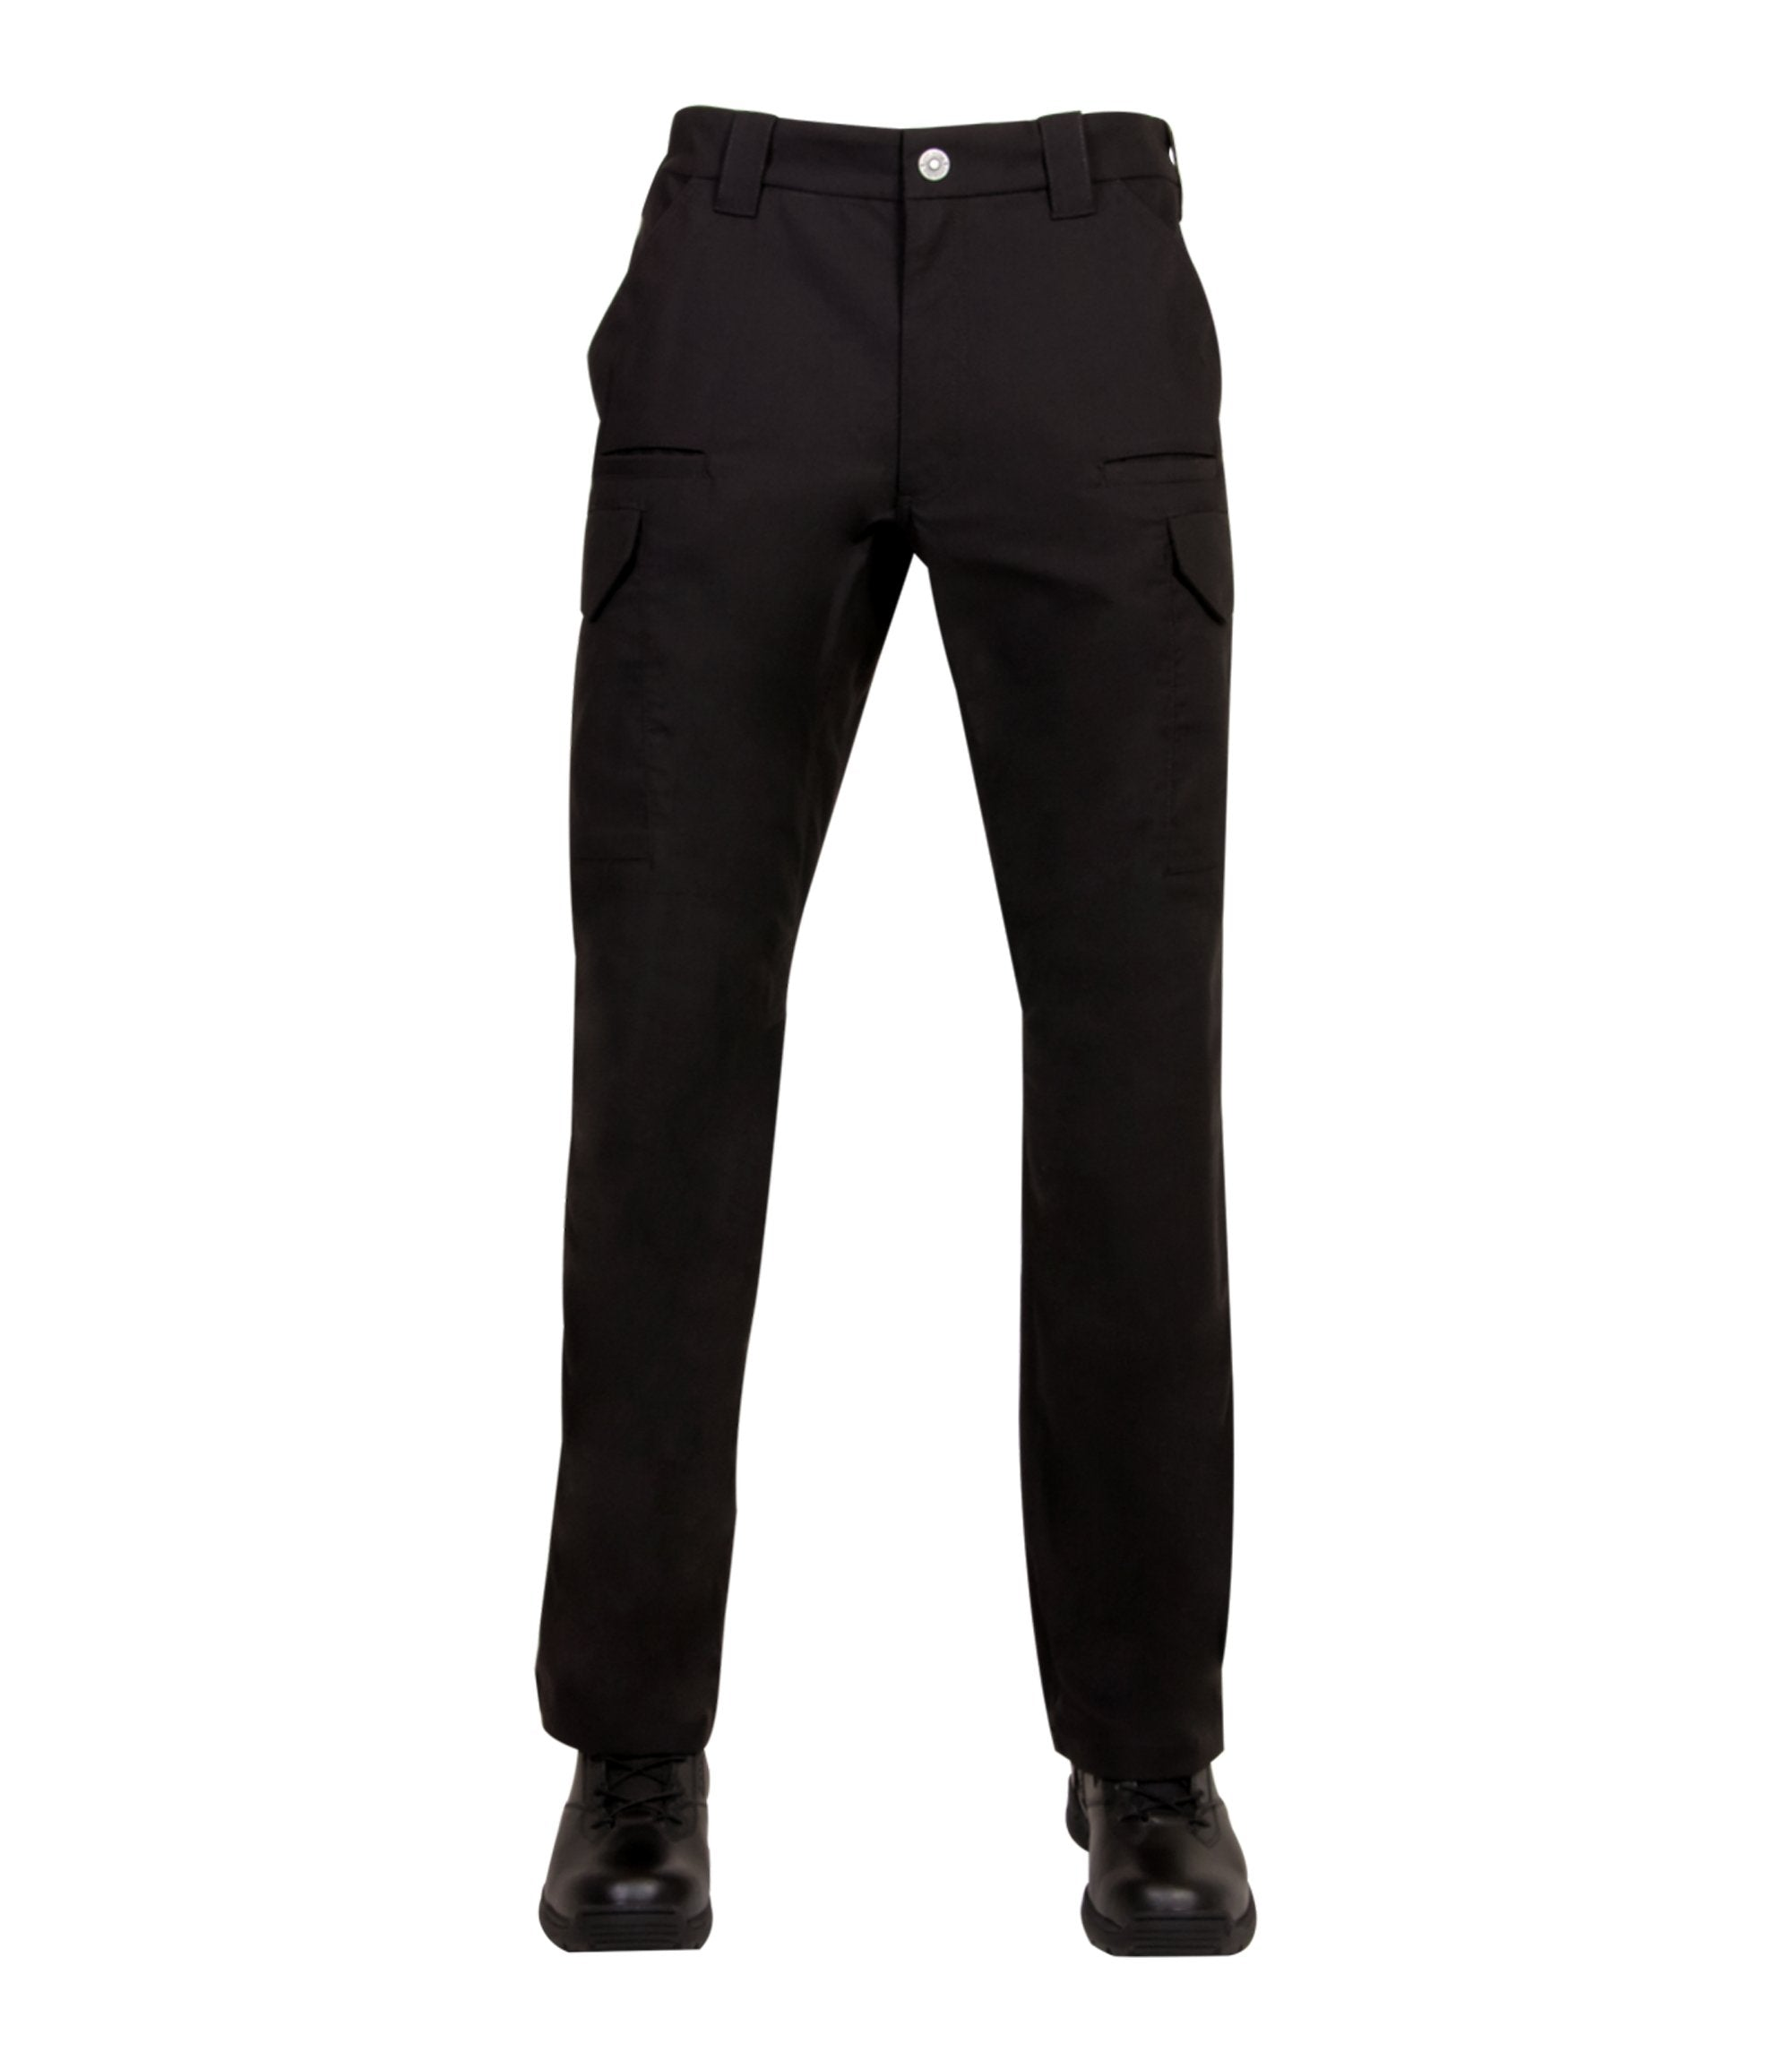 First Tactical V2 Tactical Pants - Mens - Khaki & Black - red-diamond-uniform-police-supply